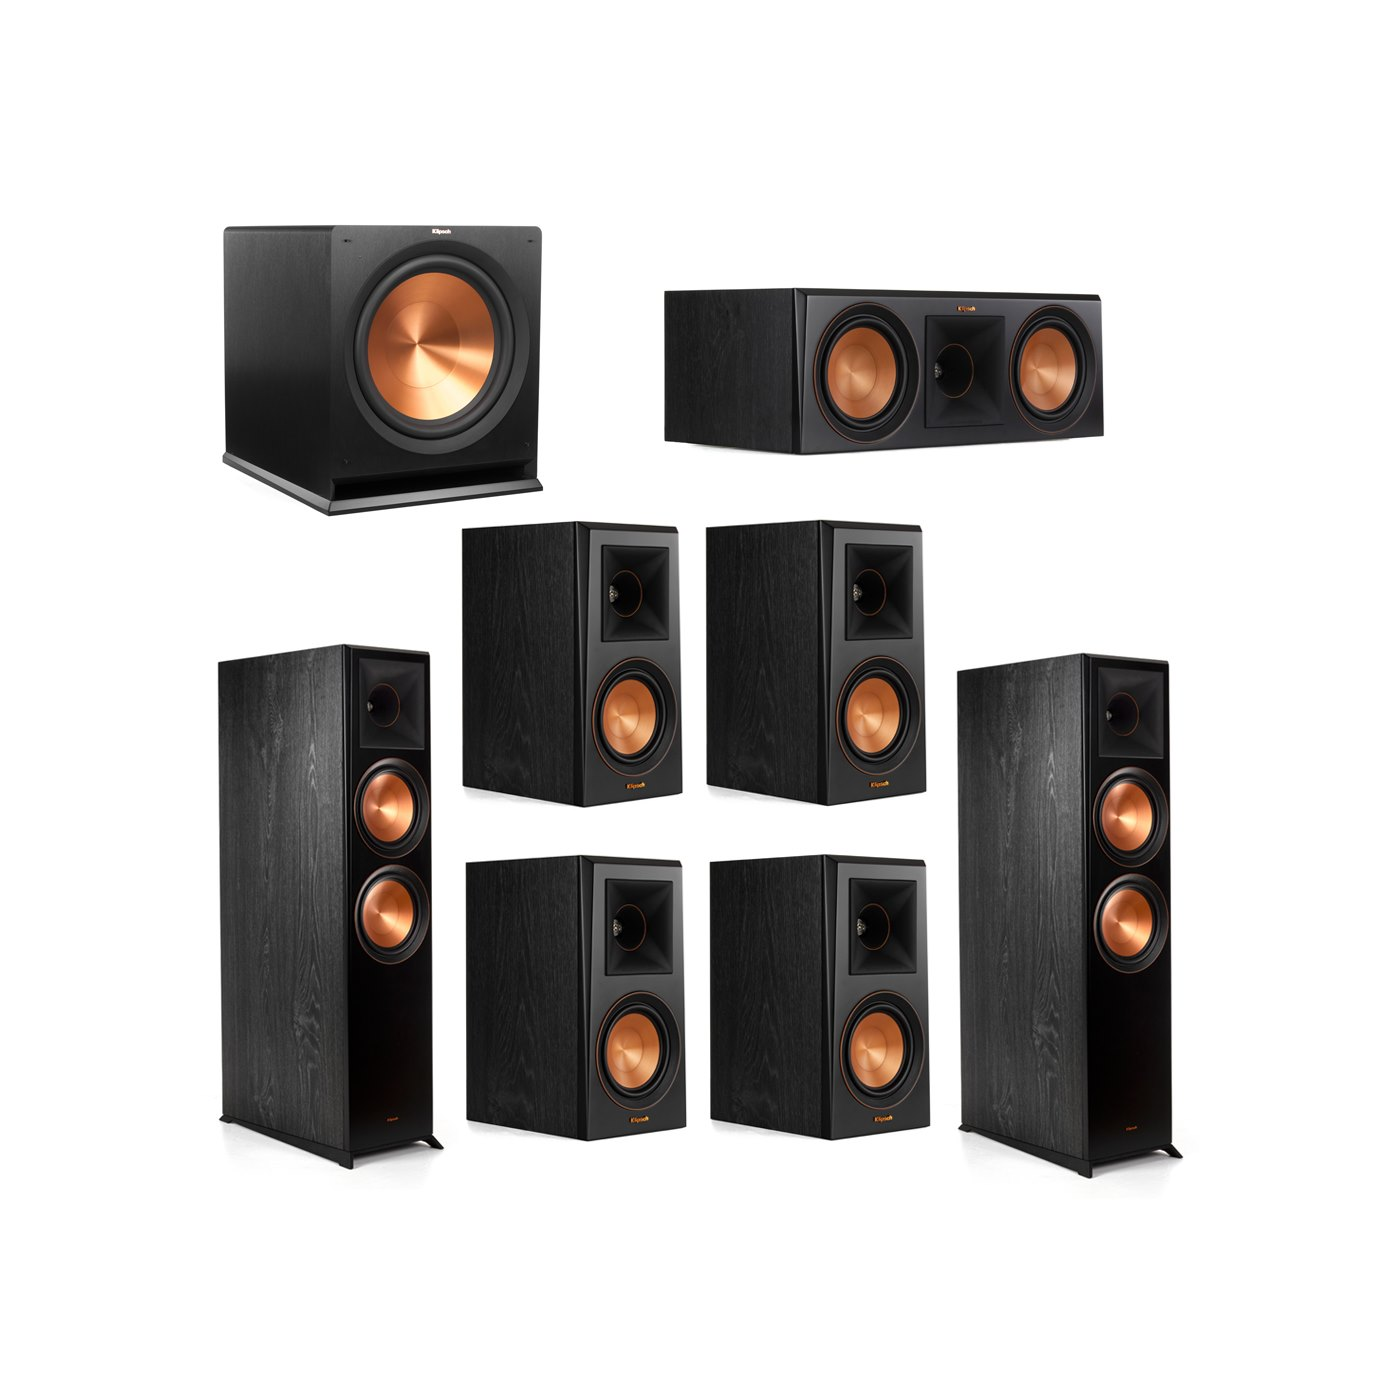 Klipsch 7.1.2 System - 2 RP-8060FA Dolby Atmos Speakers, 1 RP-600C, 4 RP-500M Speakers, 1 R-115SW